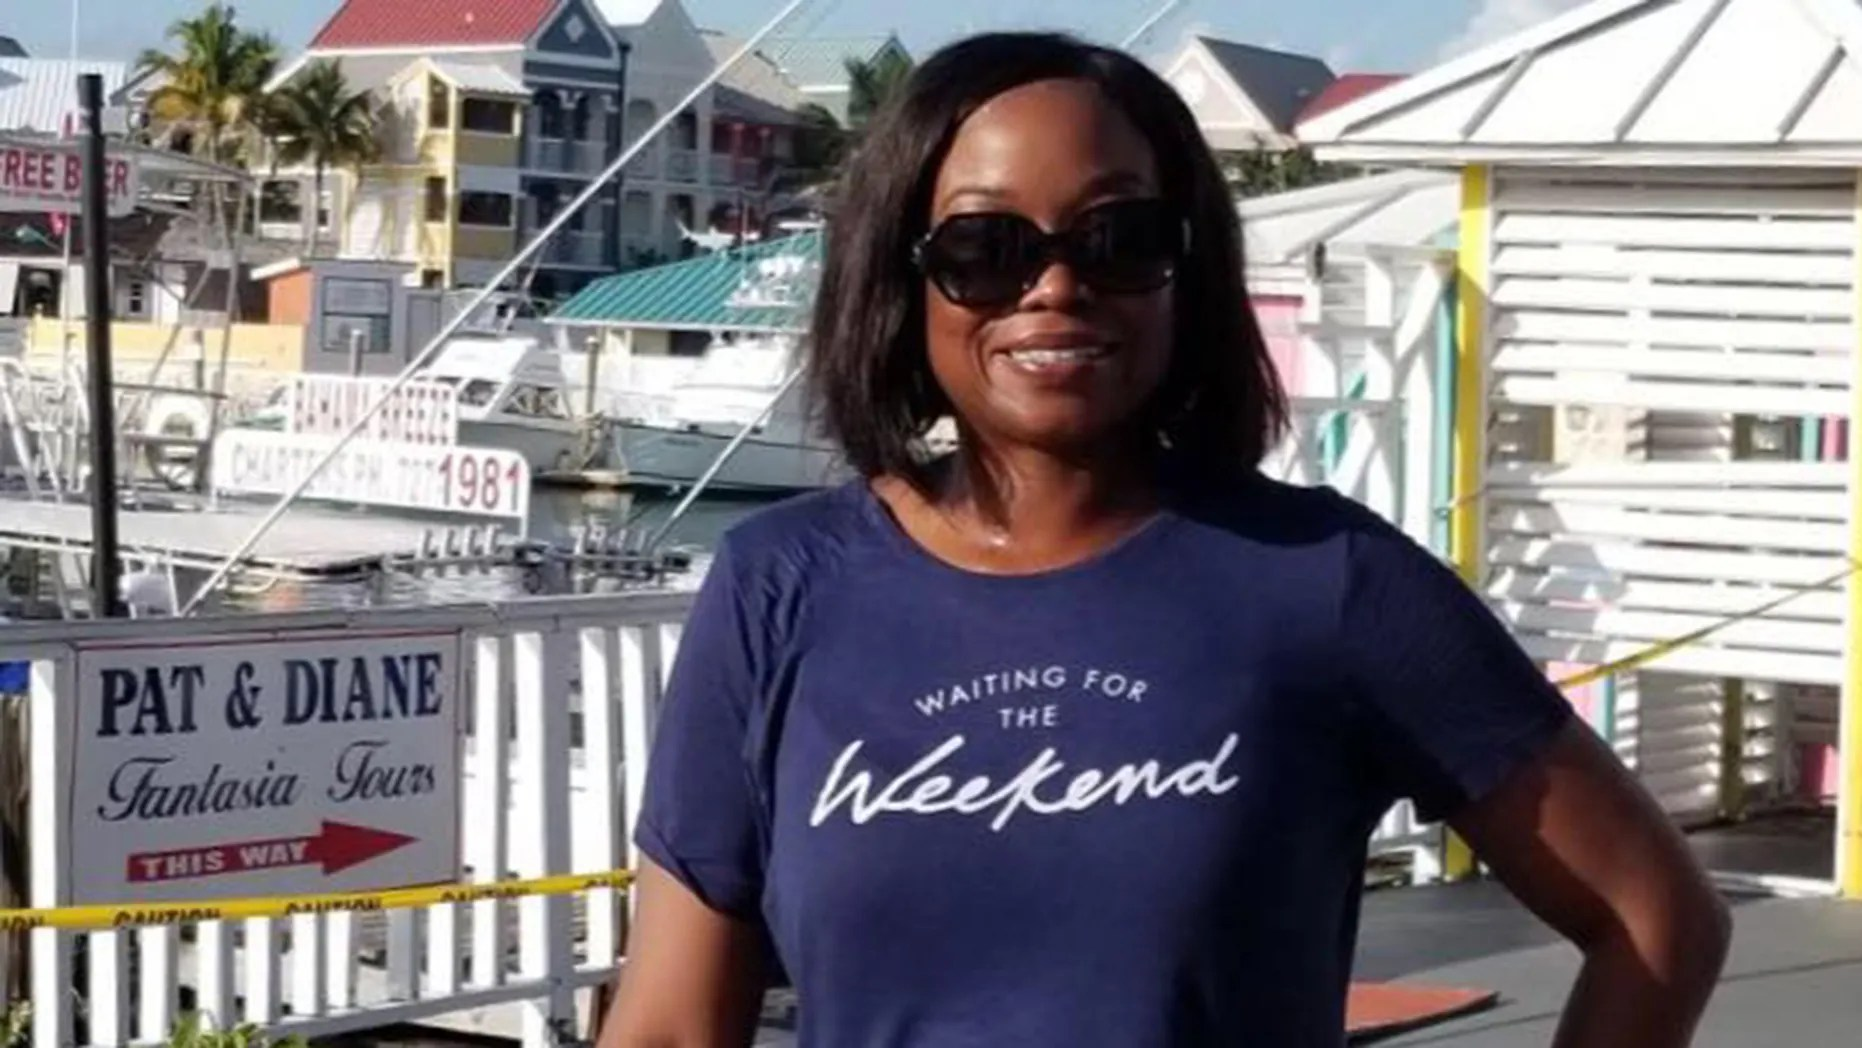 The death of Navy Chief Petty Officer Andrea Washington was ruled a murder as police arrested and charged her former fiancé on Friday, reports said.